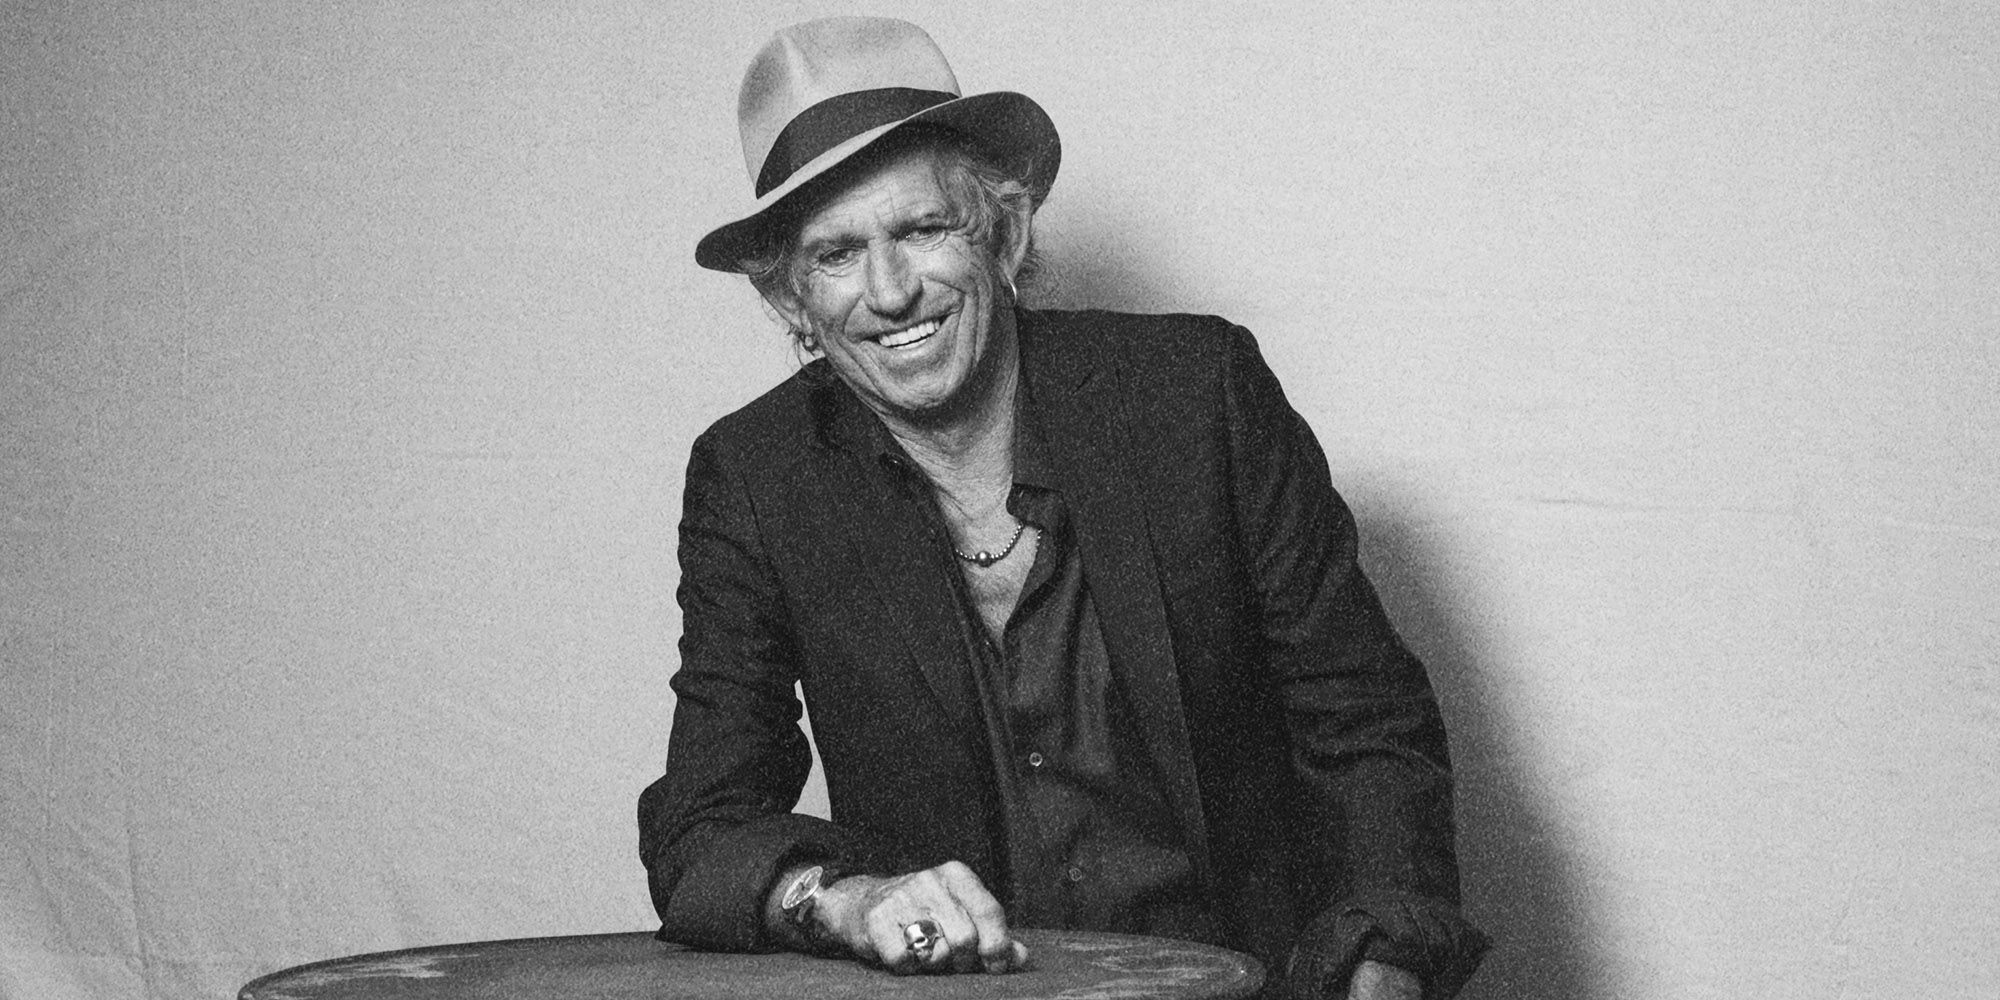 Keith Richards On Rolling Stones Songs - Keith Richards